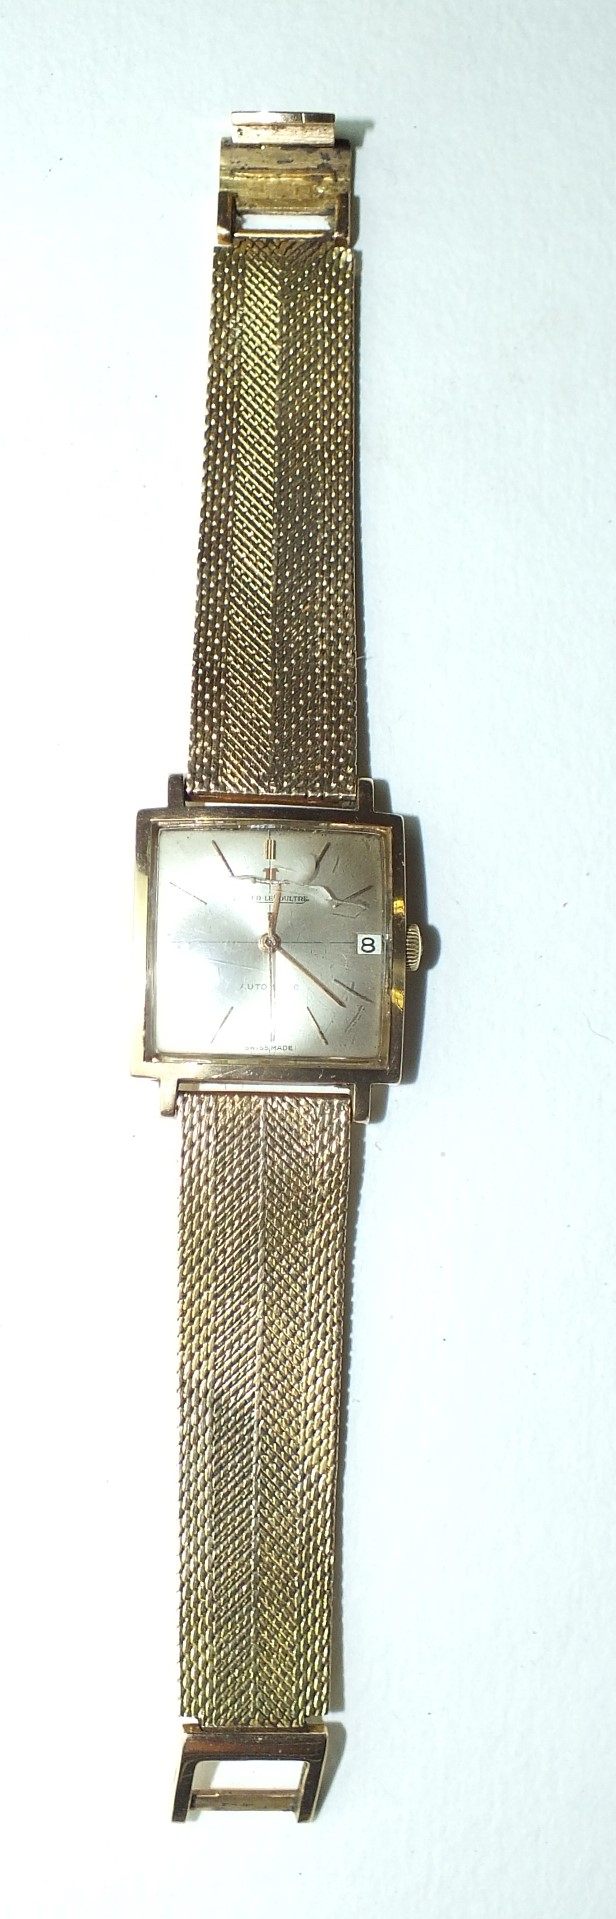 Lot 234 - Jaeger LeCoultre, a gentleman's square-faced automatic wrist watch, the silvered dial with baton